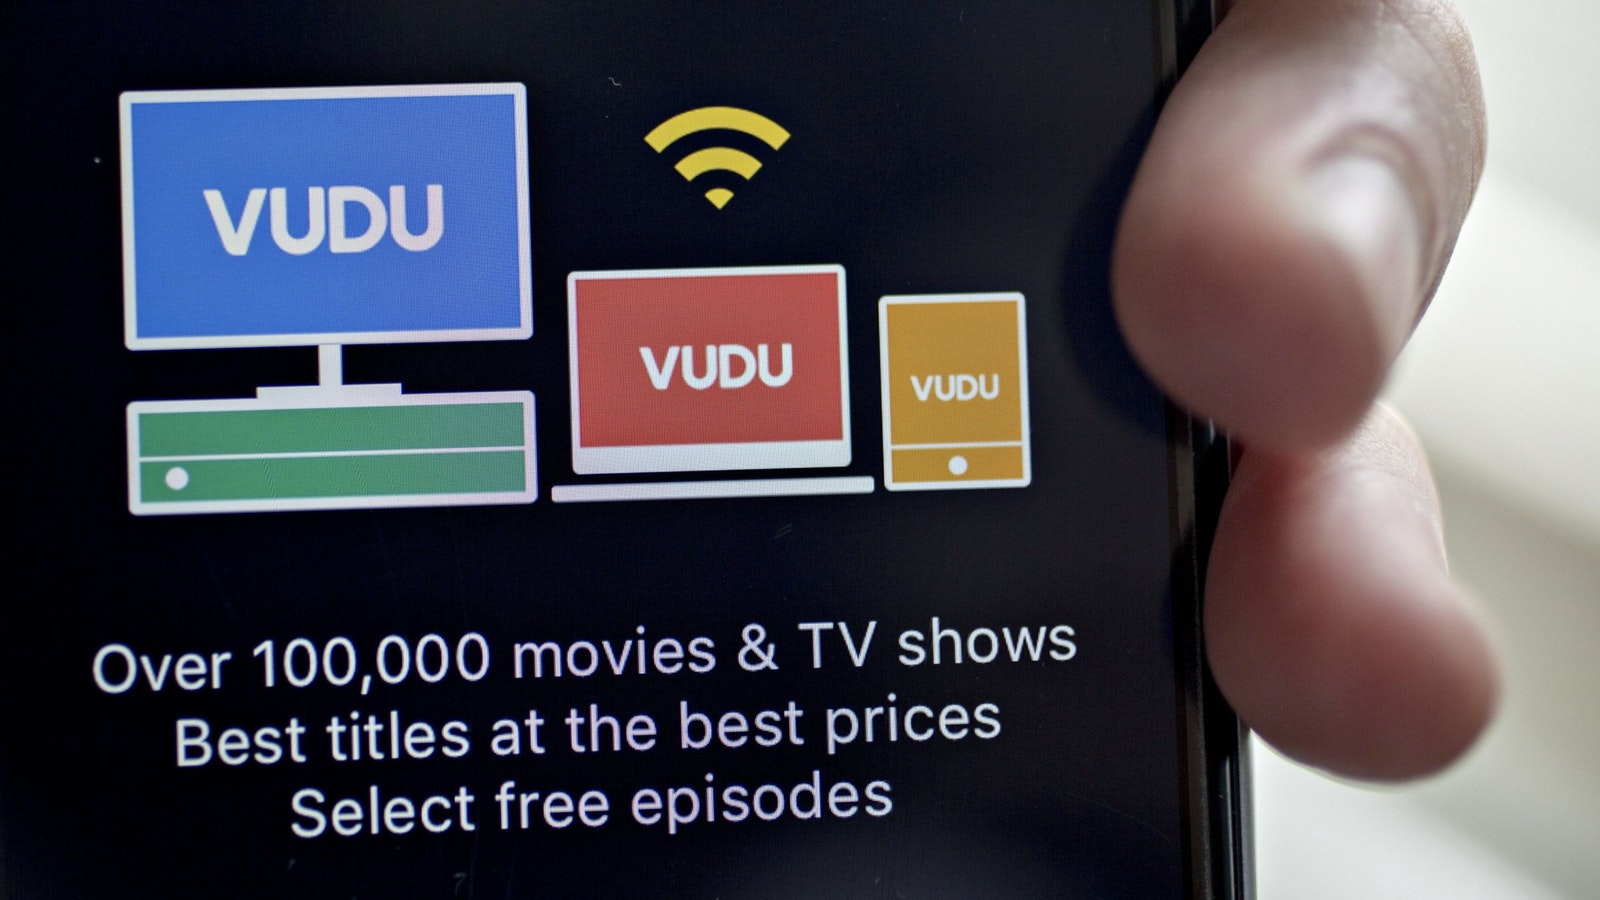 Vudu's app on an iPhone. Photo by Bloomberg